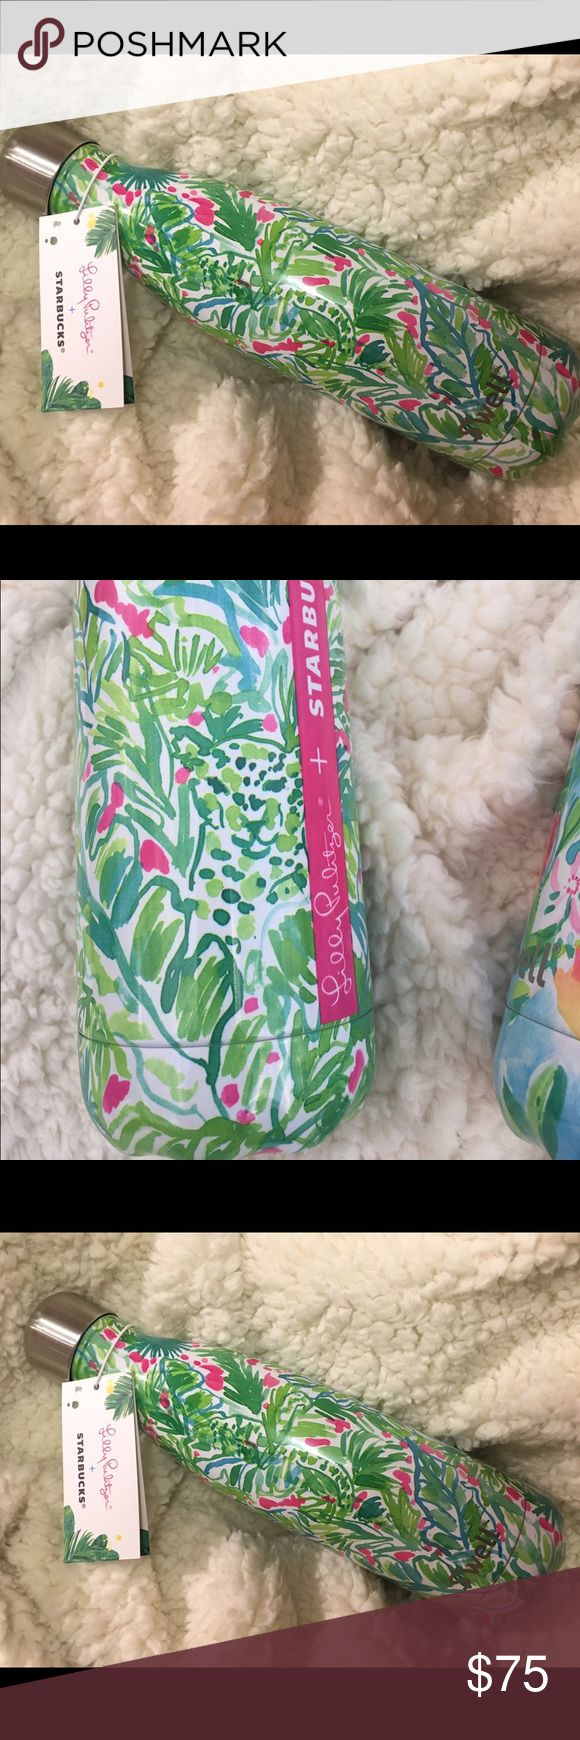 Lilly Pulitzer + Starbucks Swell Bottle Jungle Brand new with tags Lilly Swell bottle! Green cheetah pattern. SOLD OUT IN STORES AND ONLINE Swell Other